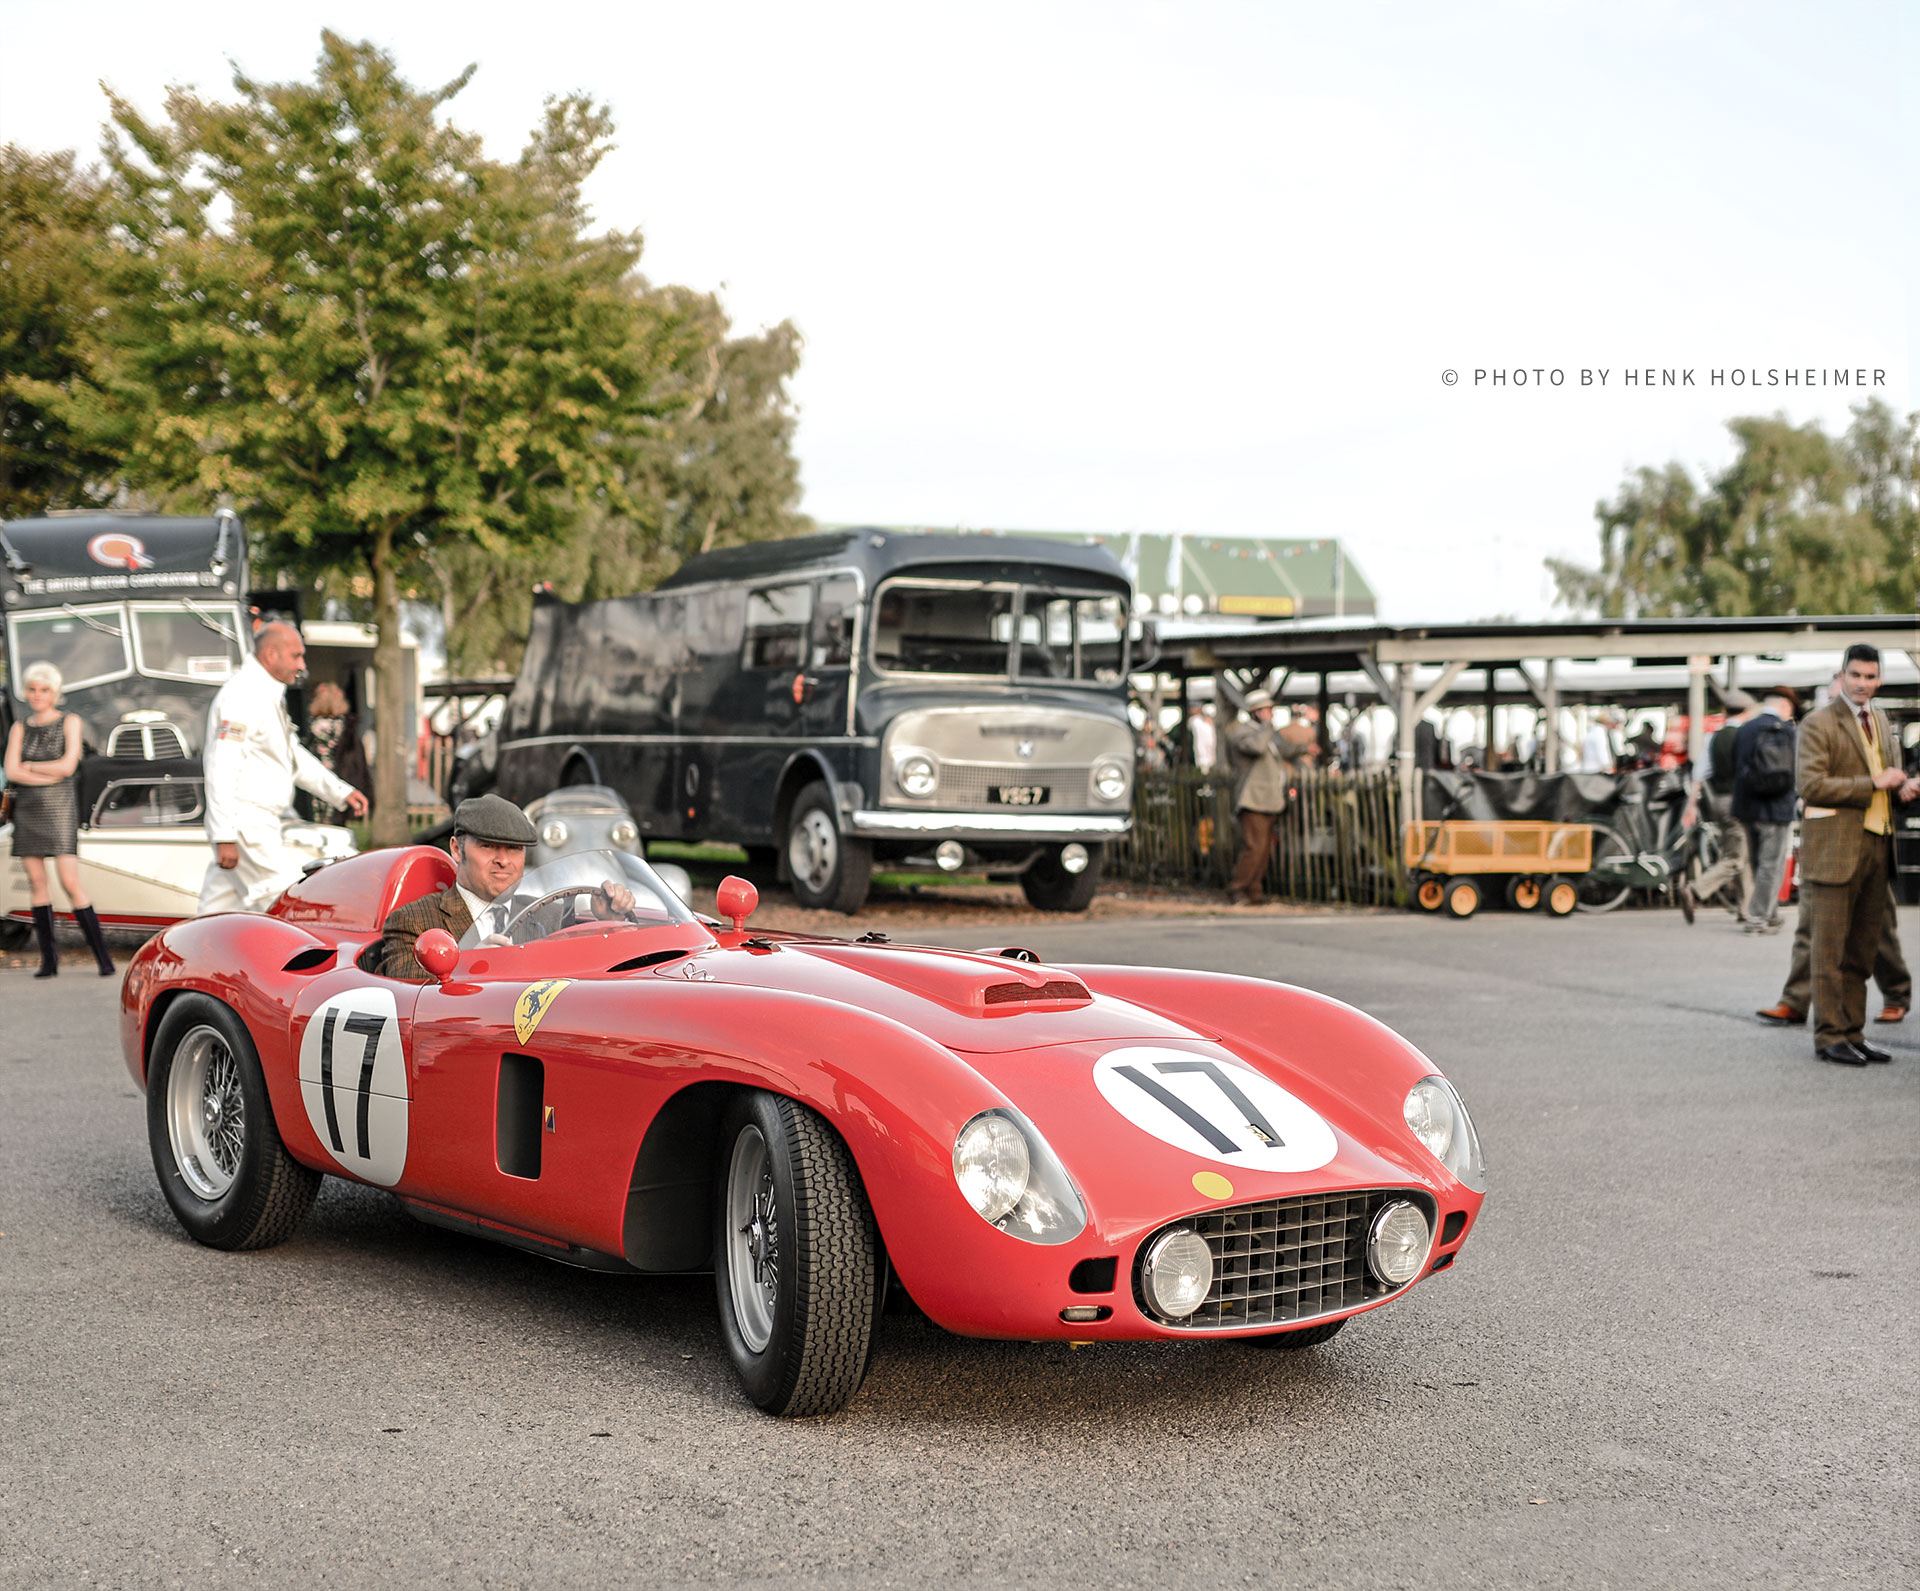 2014_Goodwood-Revival_14091212